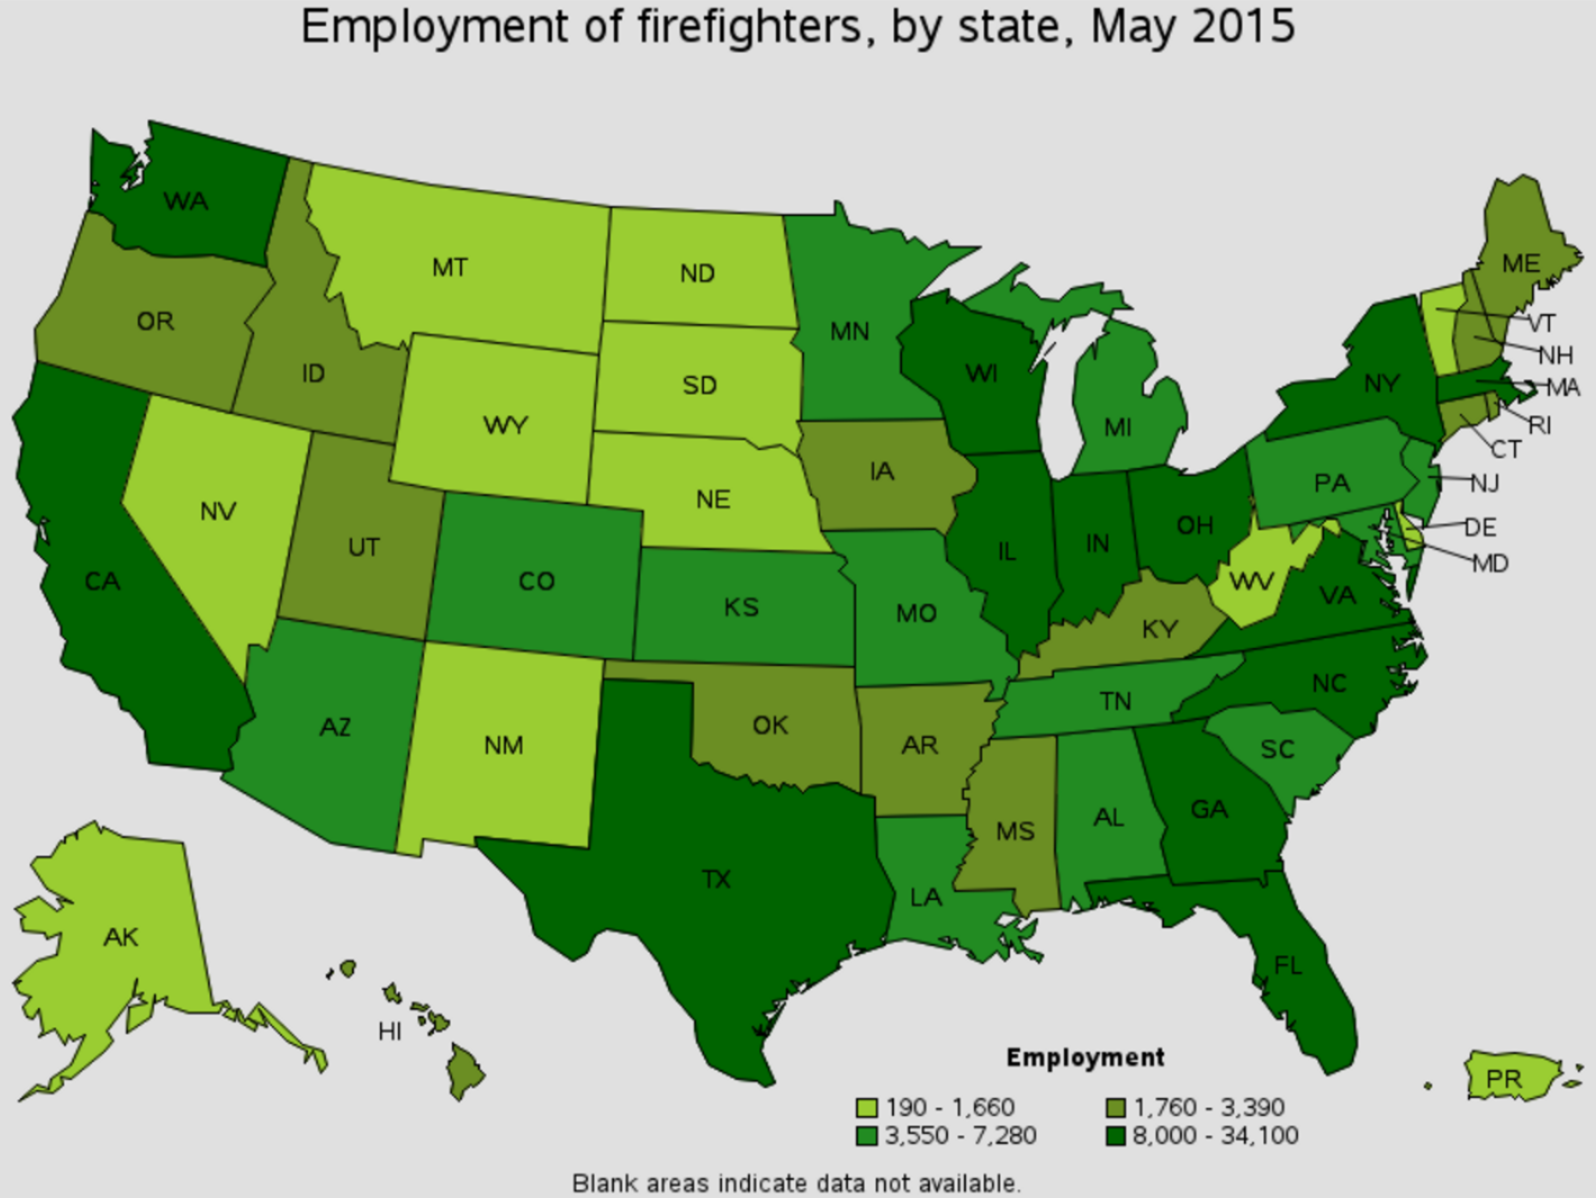 firefighter job outlook by state Fontana California